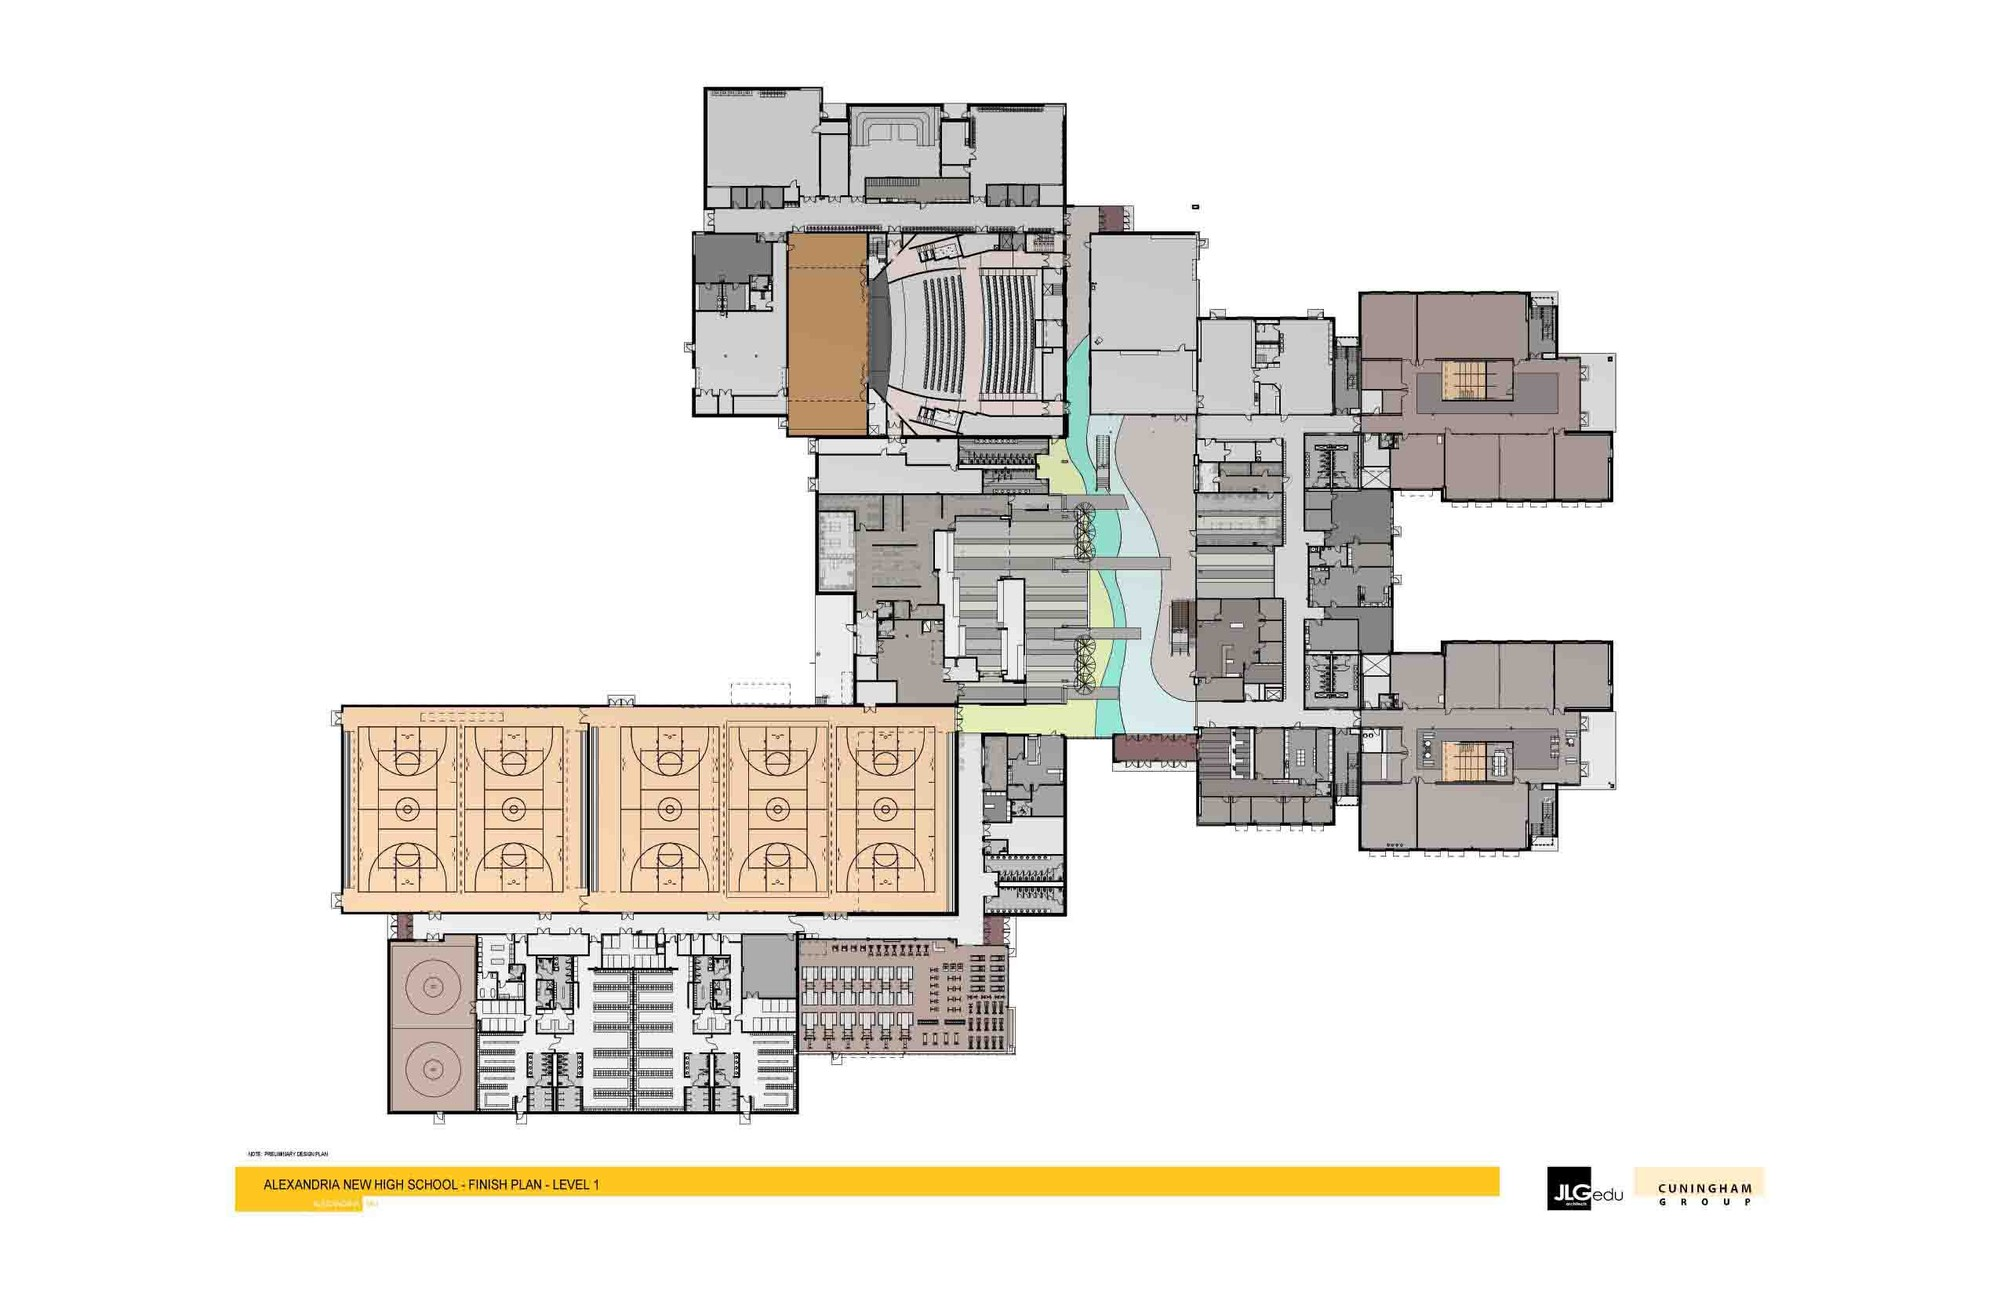 Alexandria area high school cuningham group architecture for Area of a floor plan